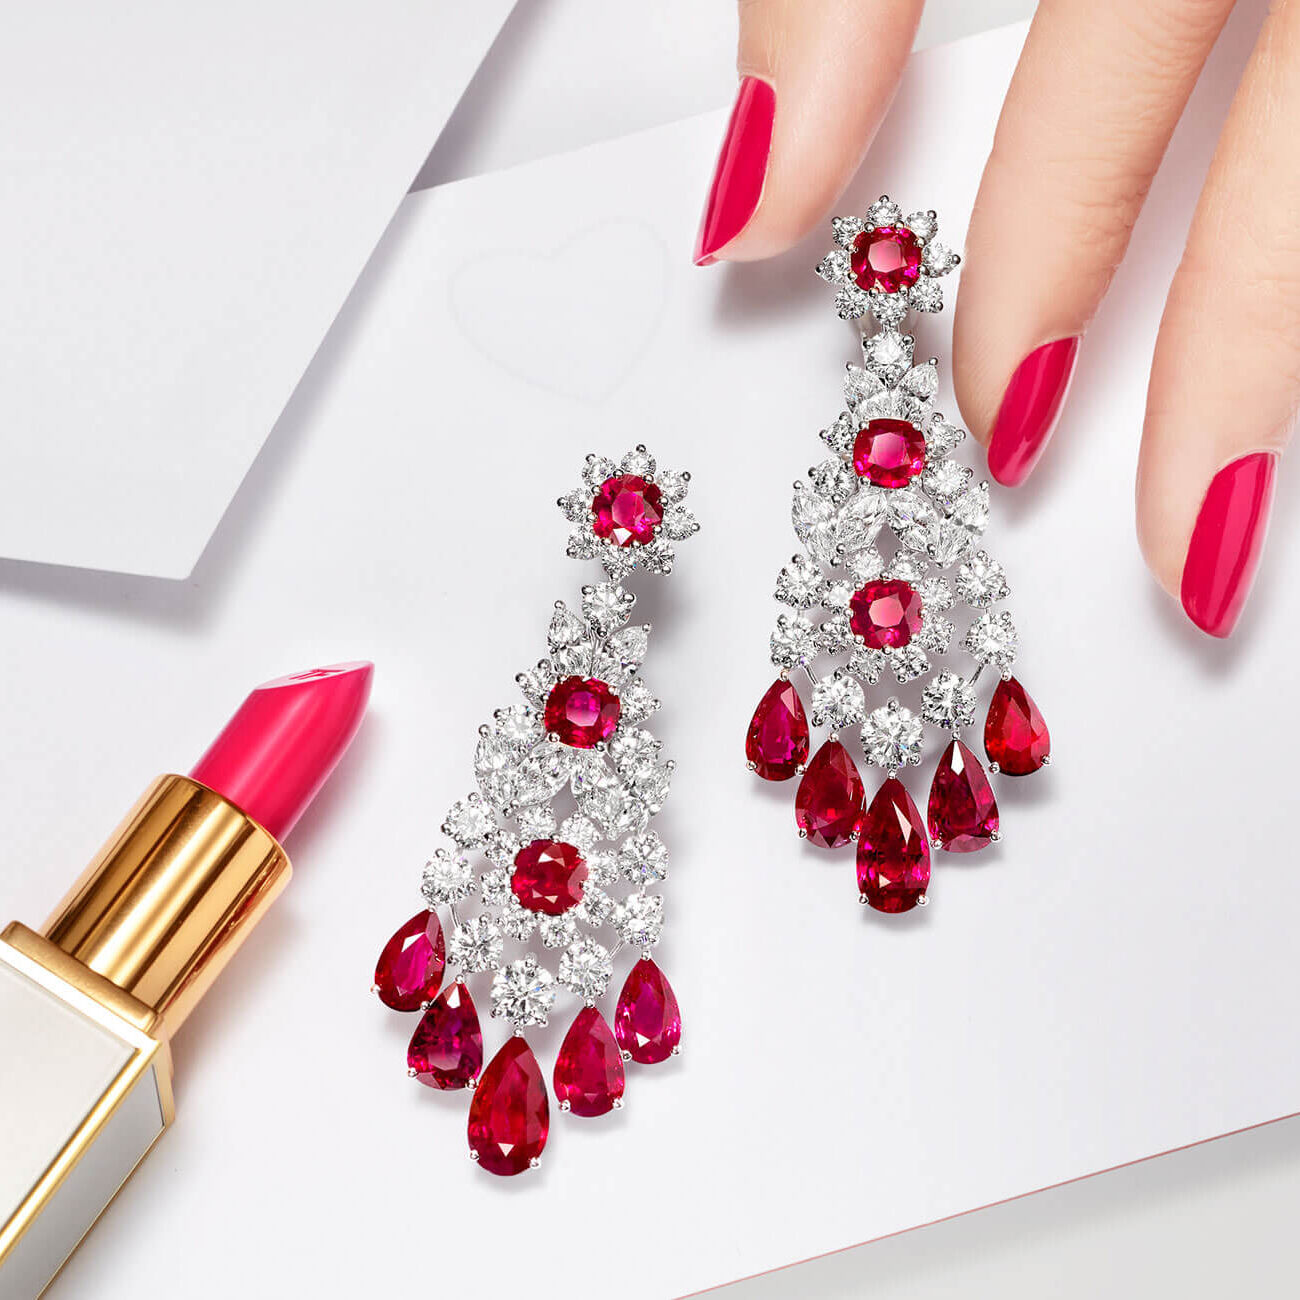 A Graff Ruby and diamond earrings with lipsticks and a lady's hand